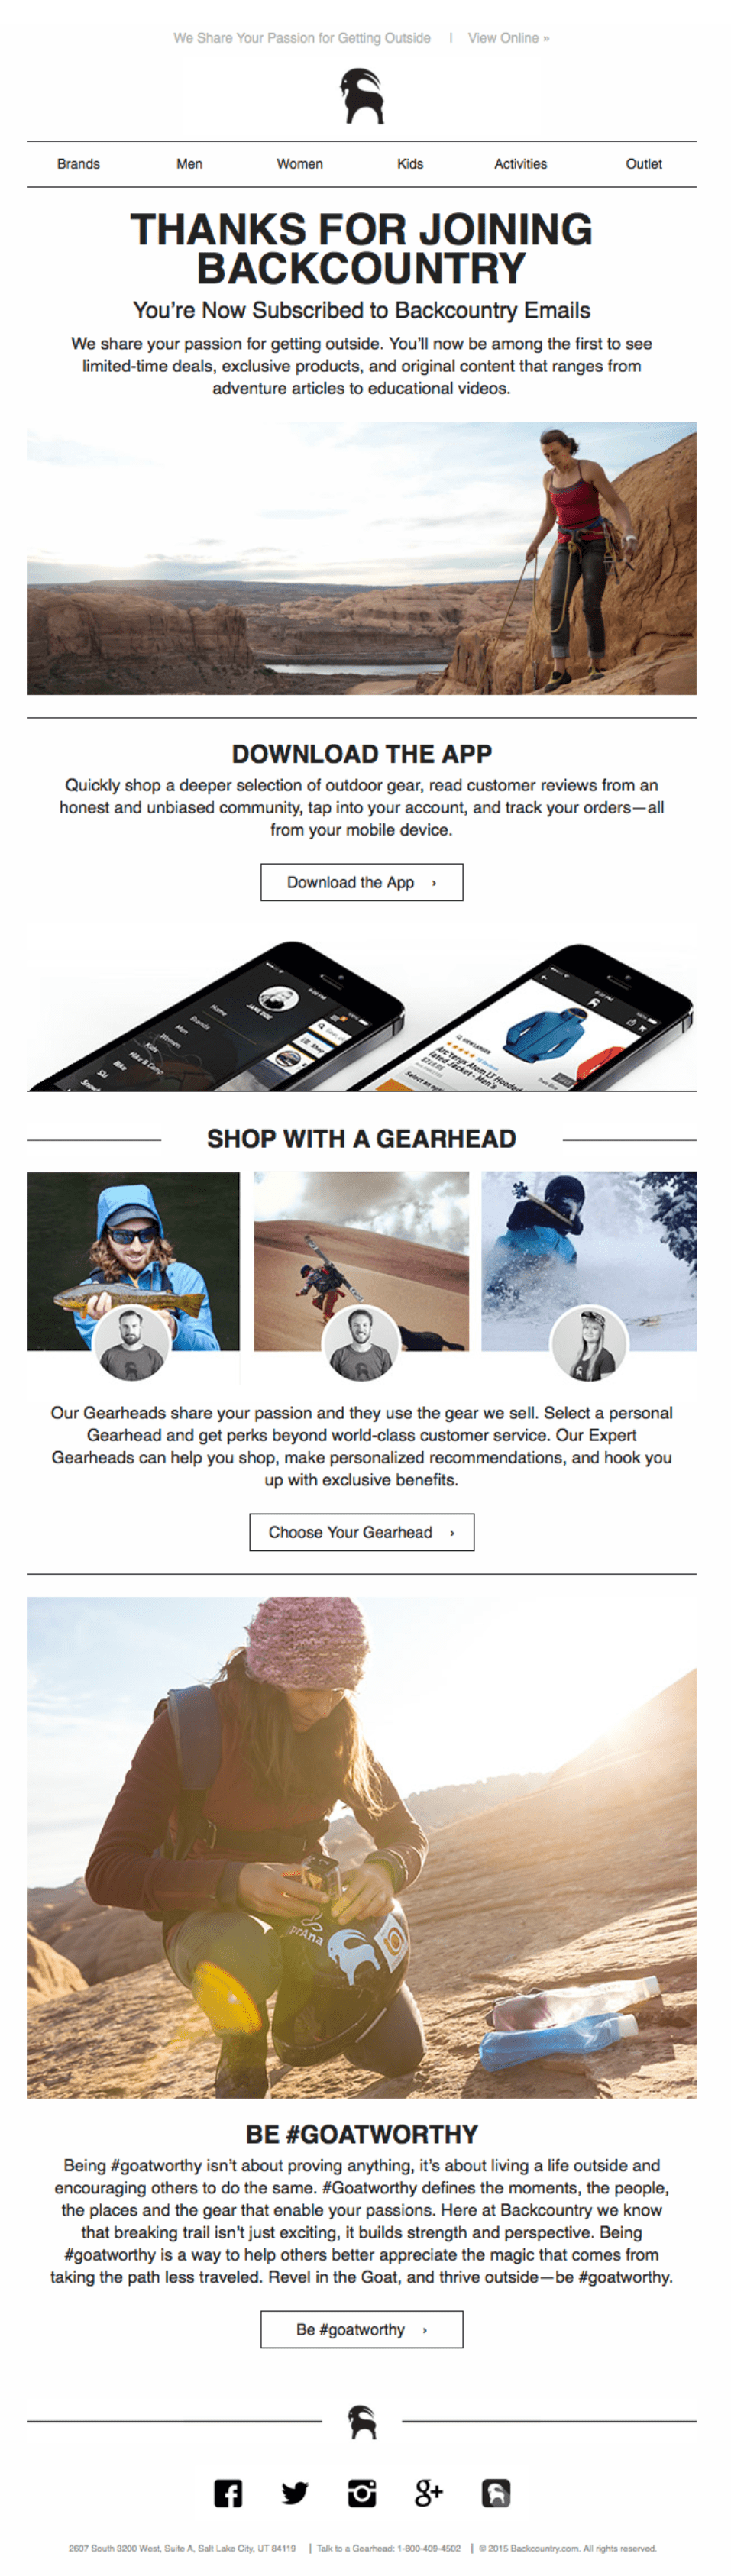 Email Marketing Example Backcountry